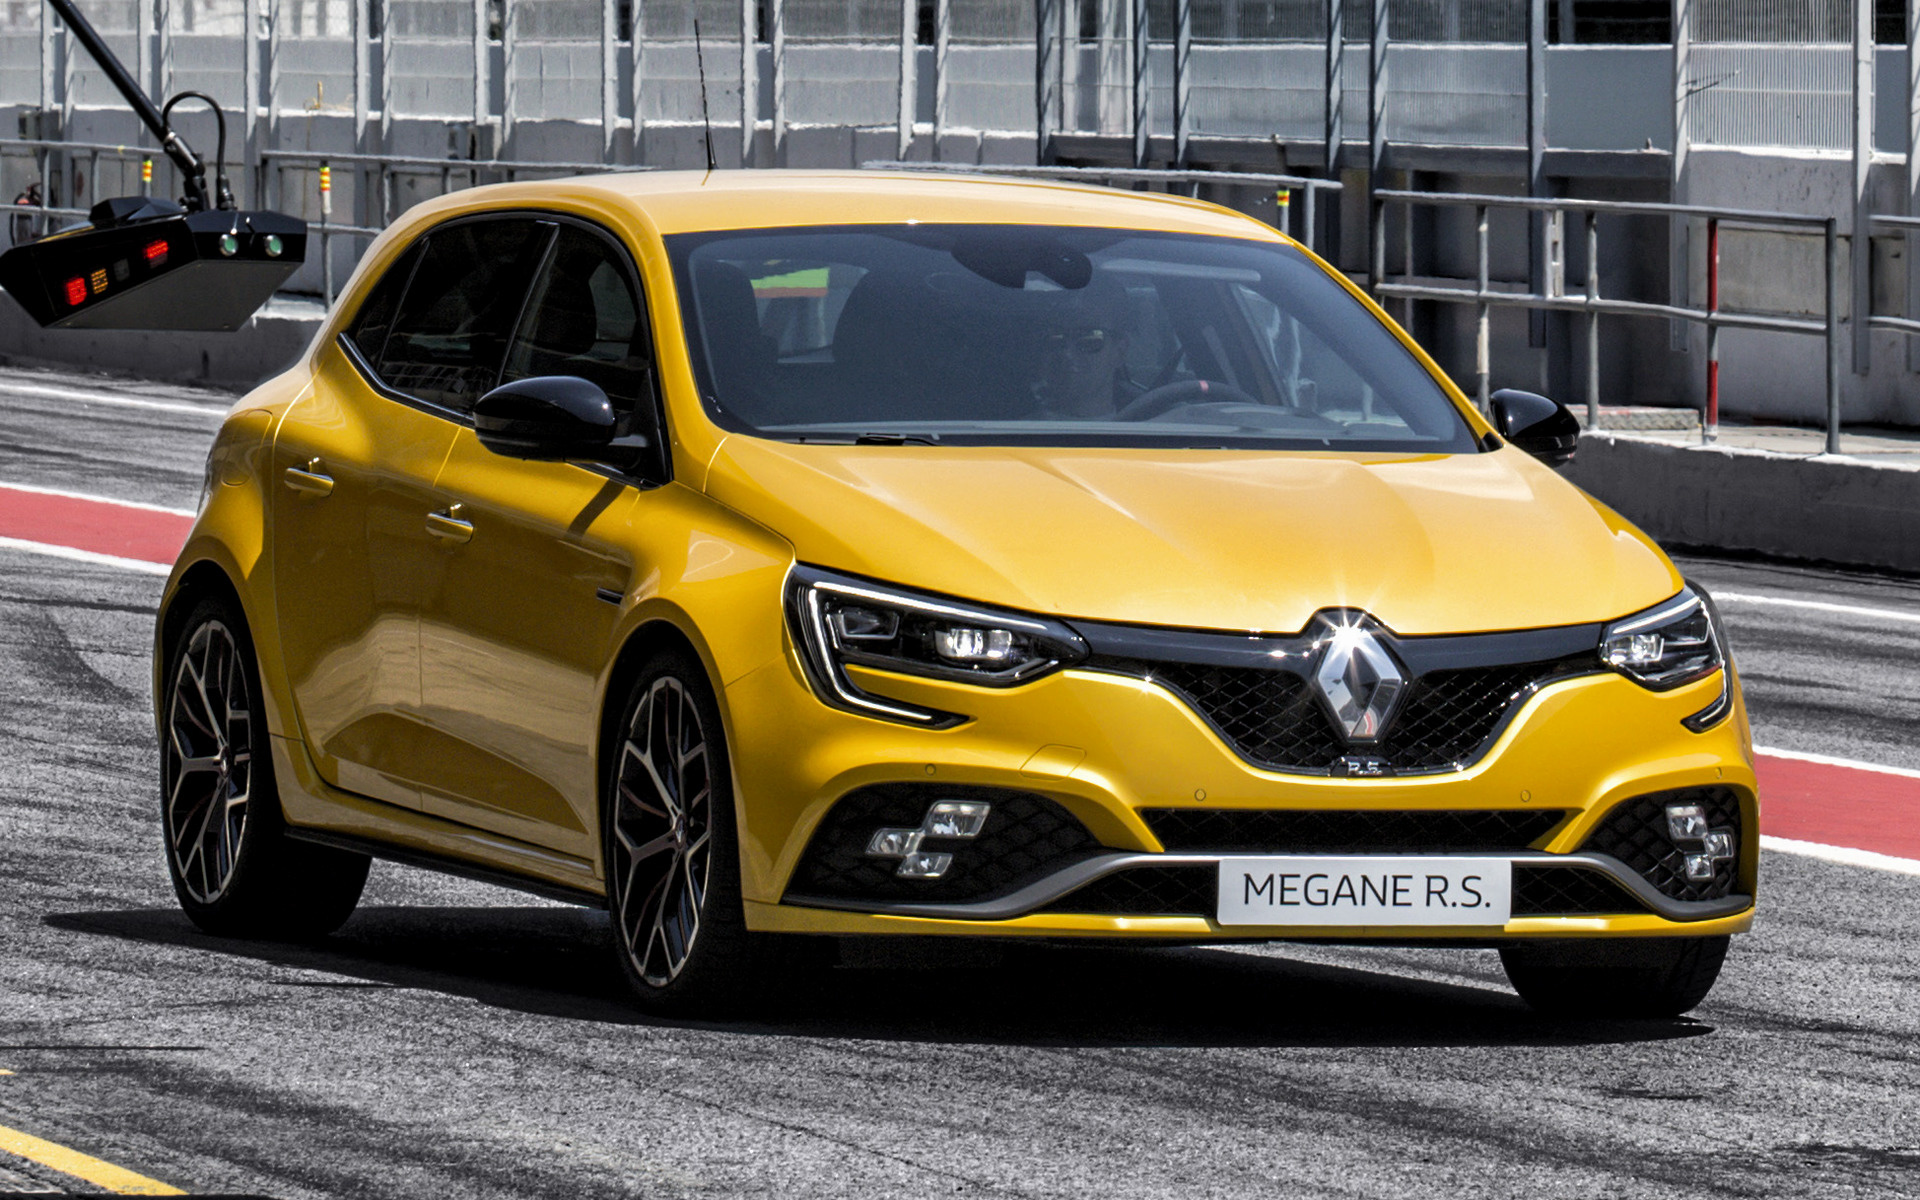 2018 Renault Megane Rs Trophy Wallpapers And Hd Images Car Pixel